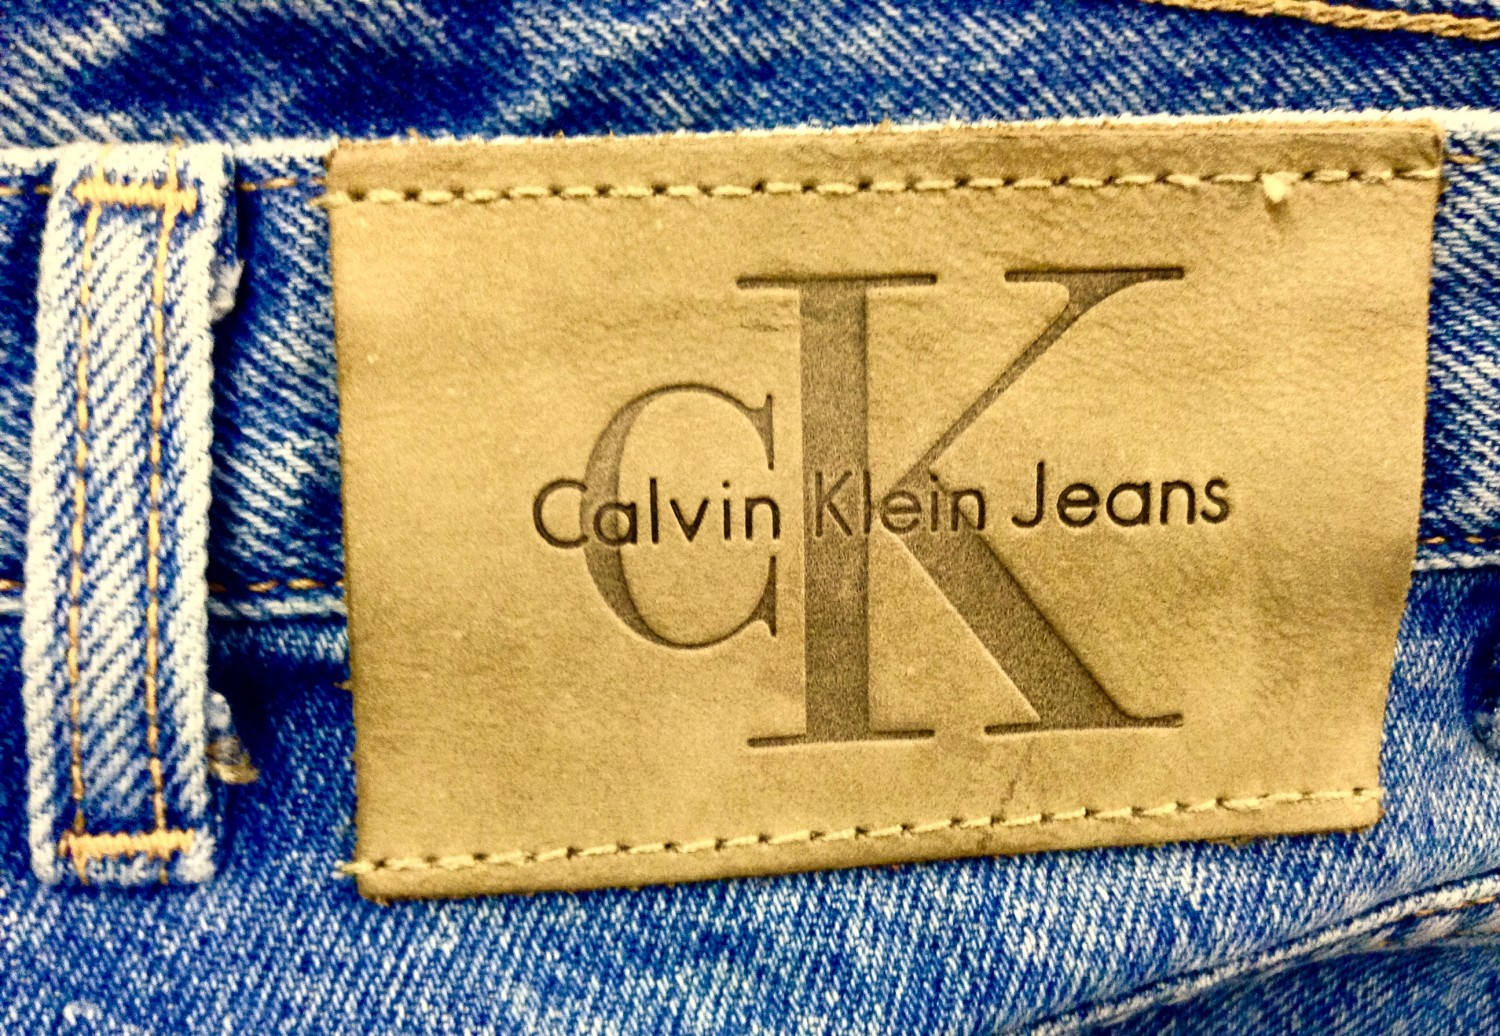 Calvin-Klein-Jeans-by-Mike-Mozart-Flickr